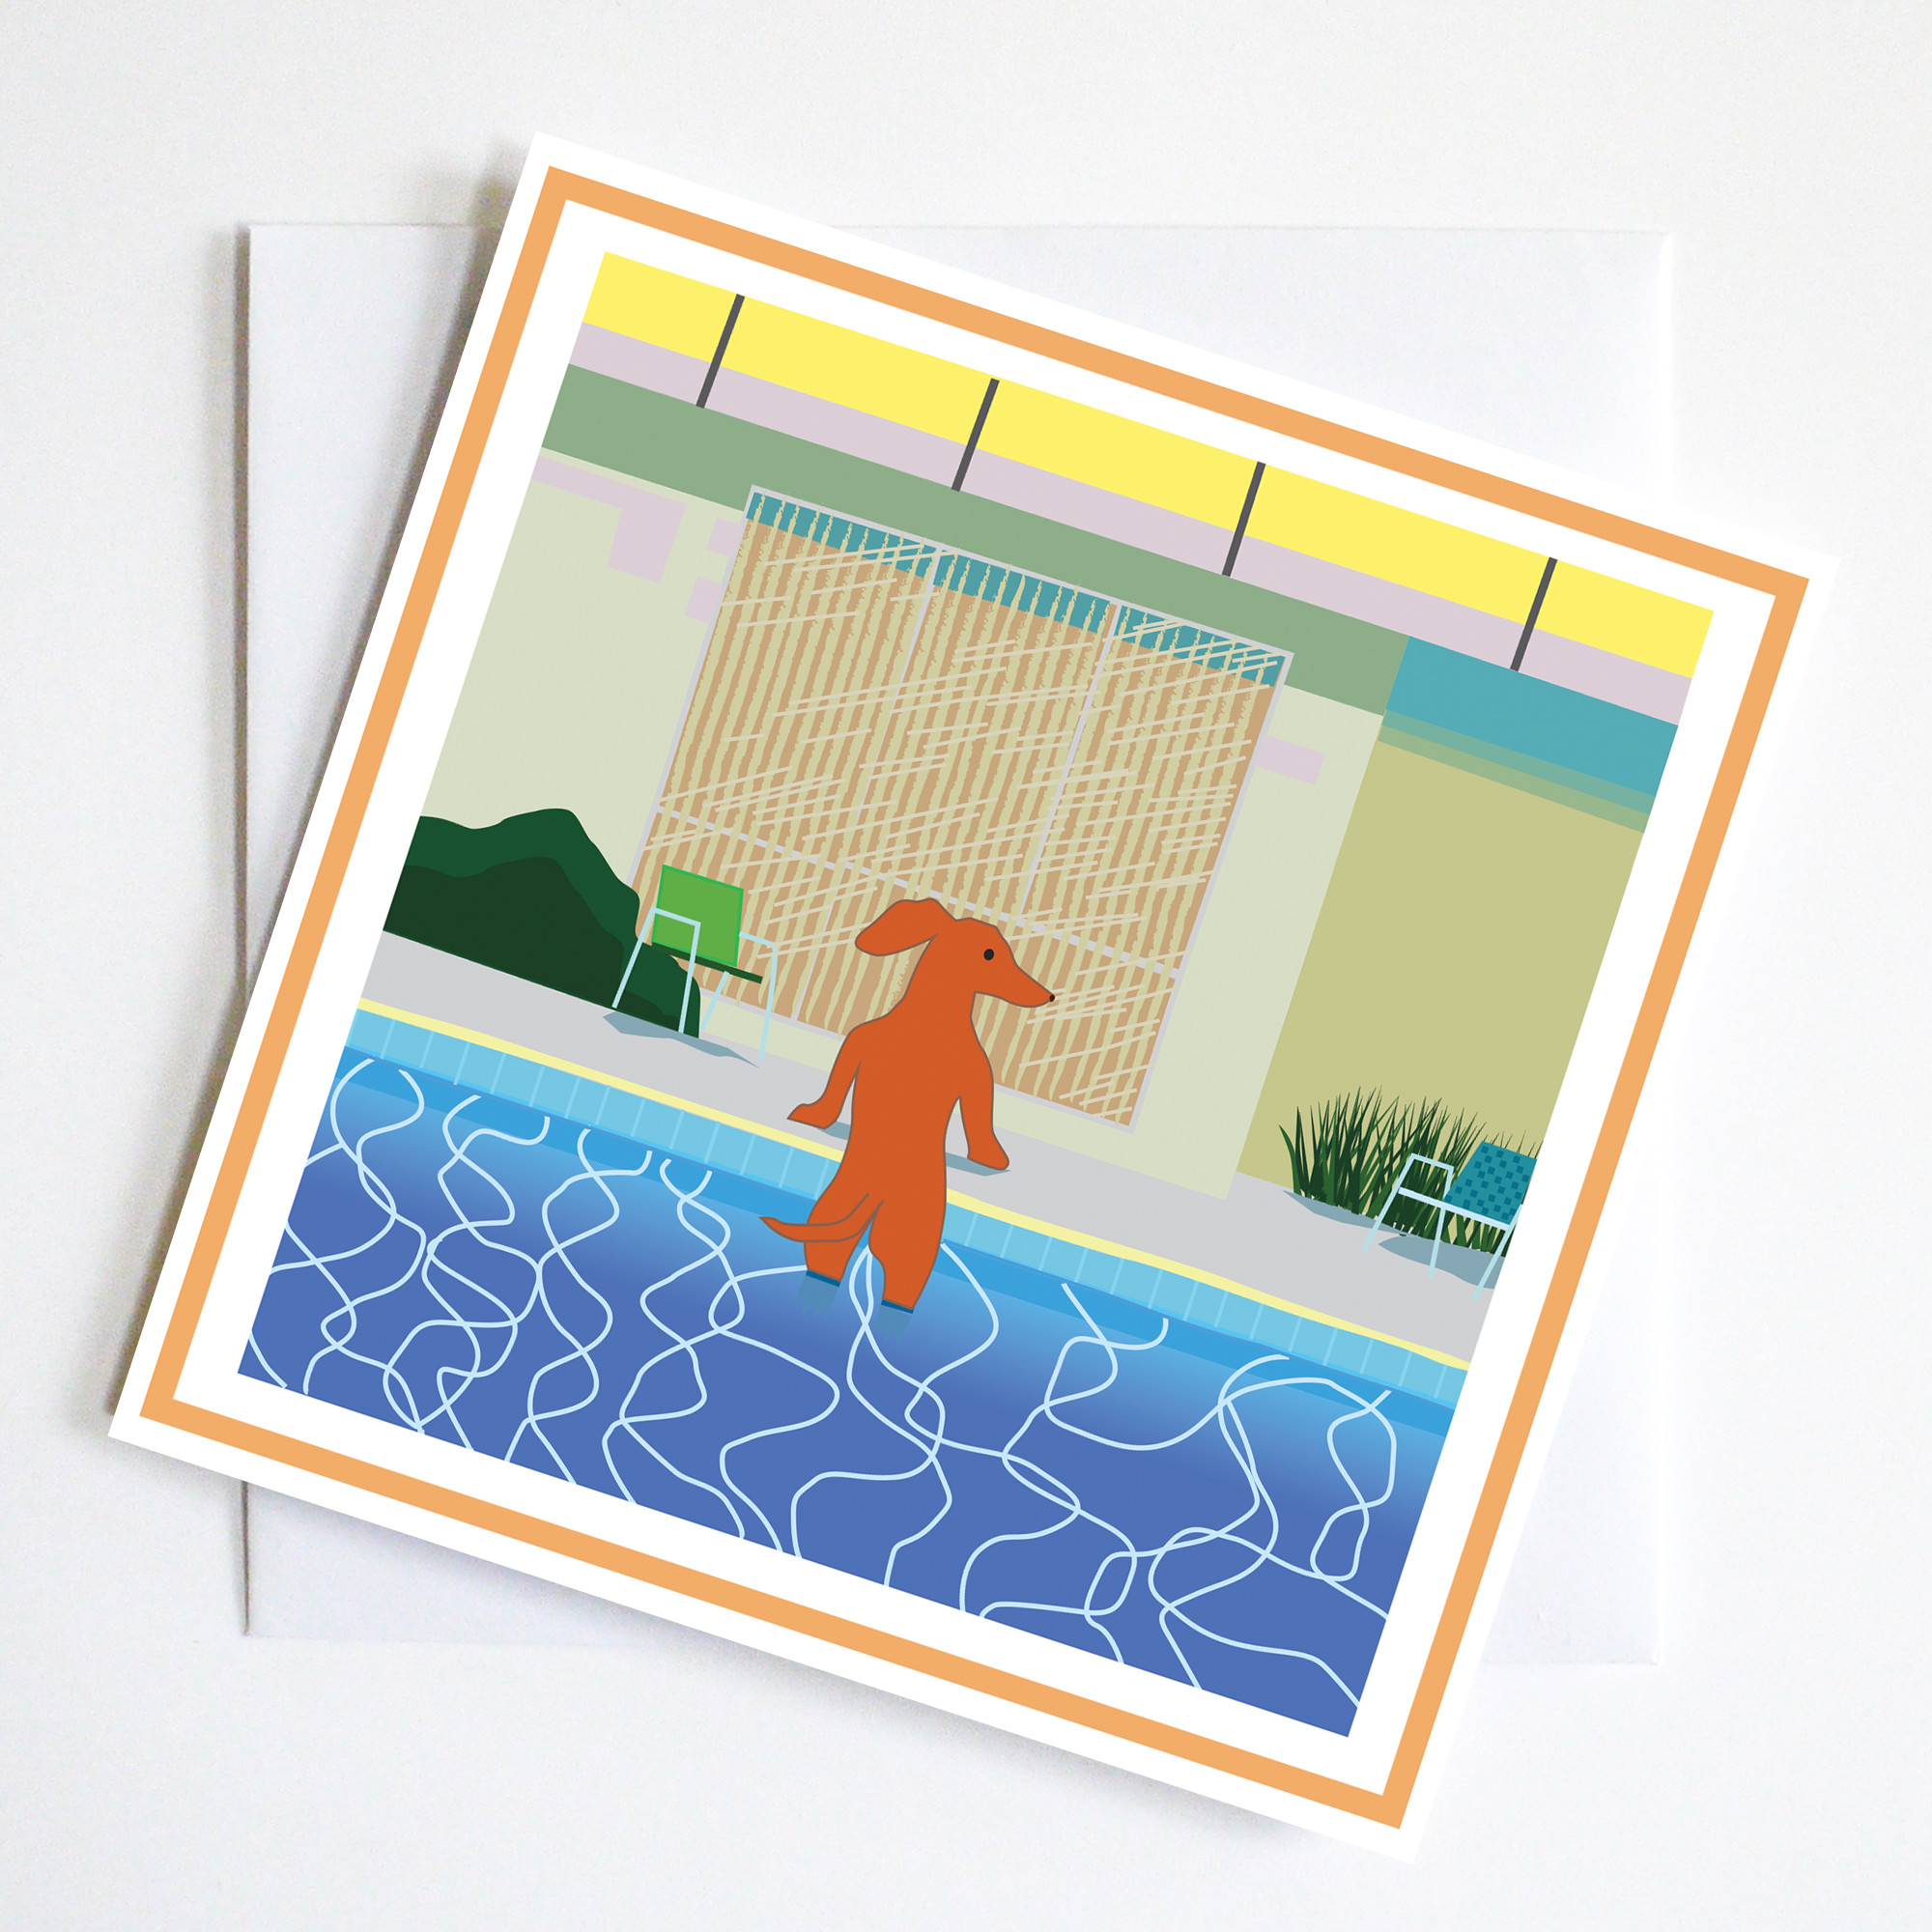 This card pays homage to Hockney's swimming pool painting with a dachshund emerging from his friends swimming pool.